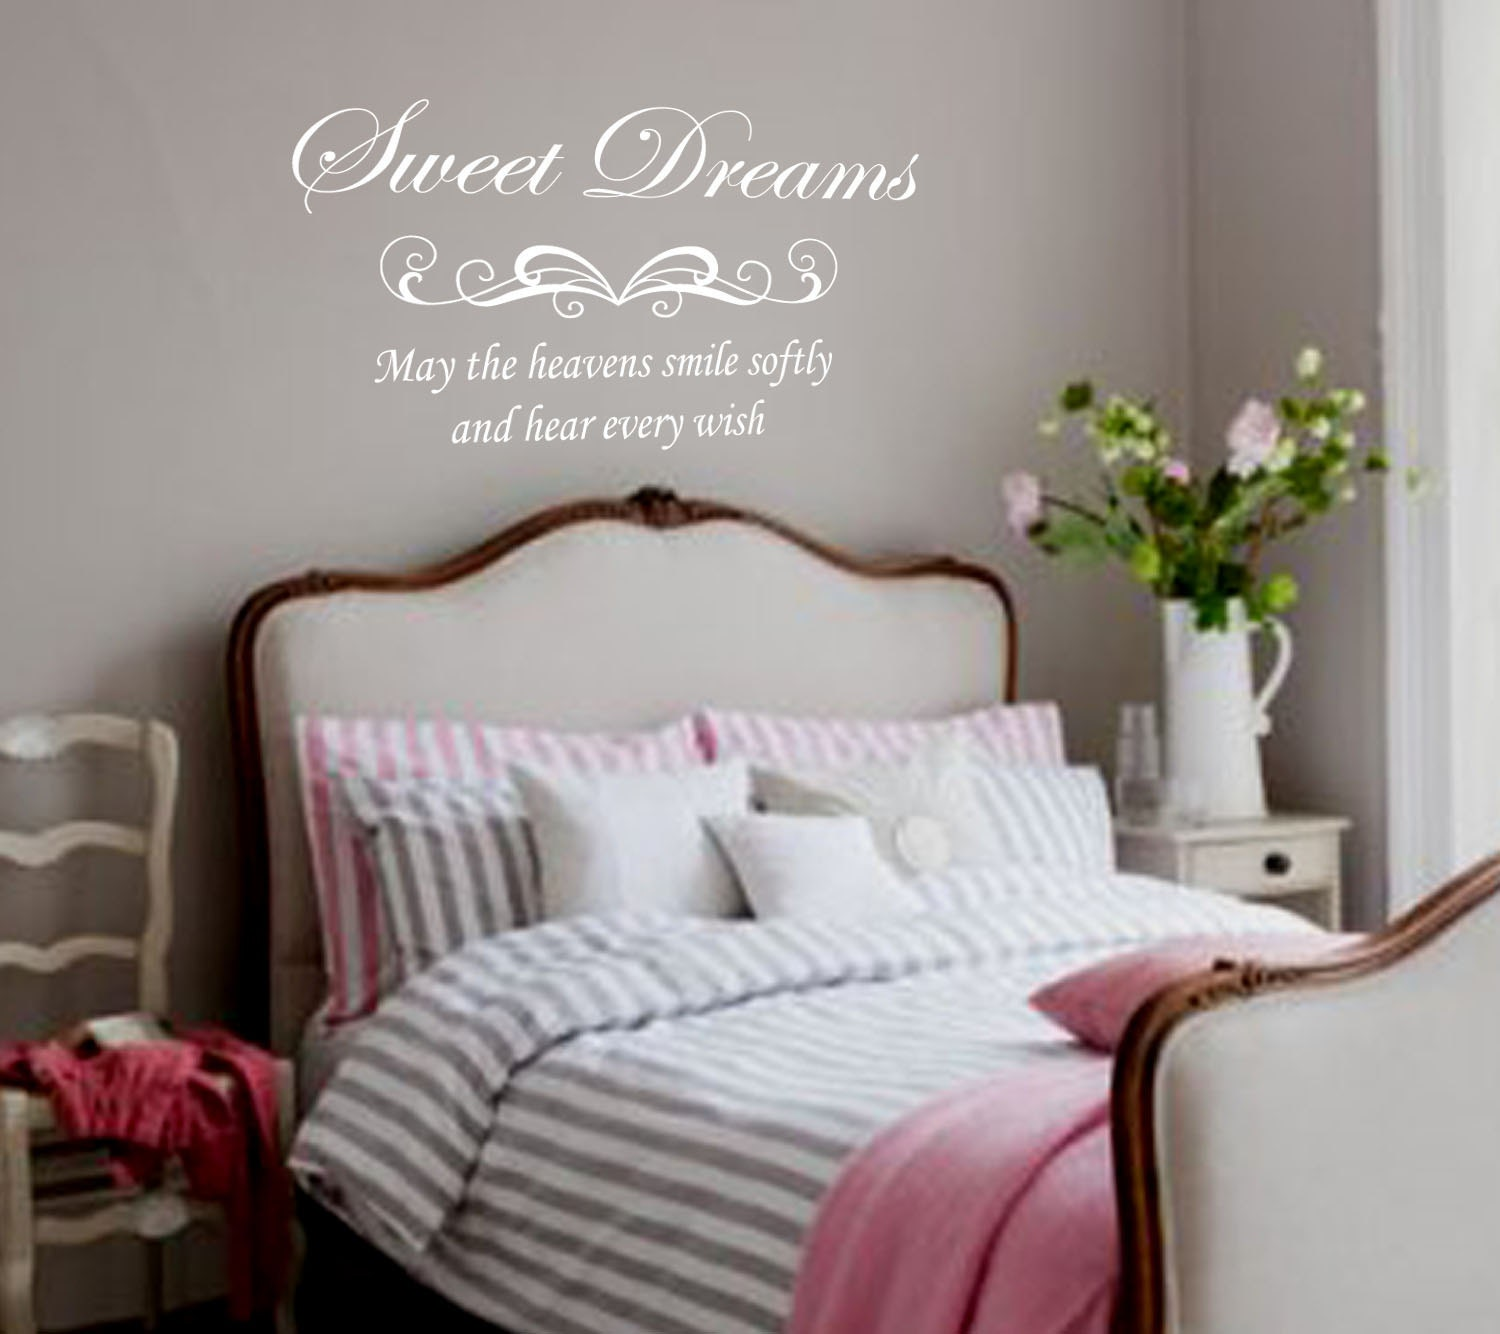 Bedroom wall decal sweet dreams removable vinyl lettering for Decor dreams